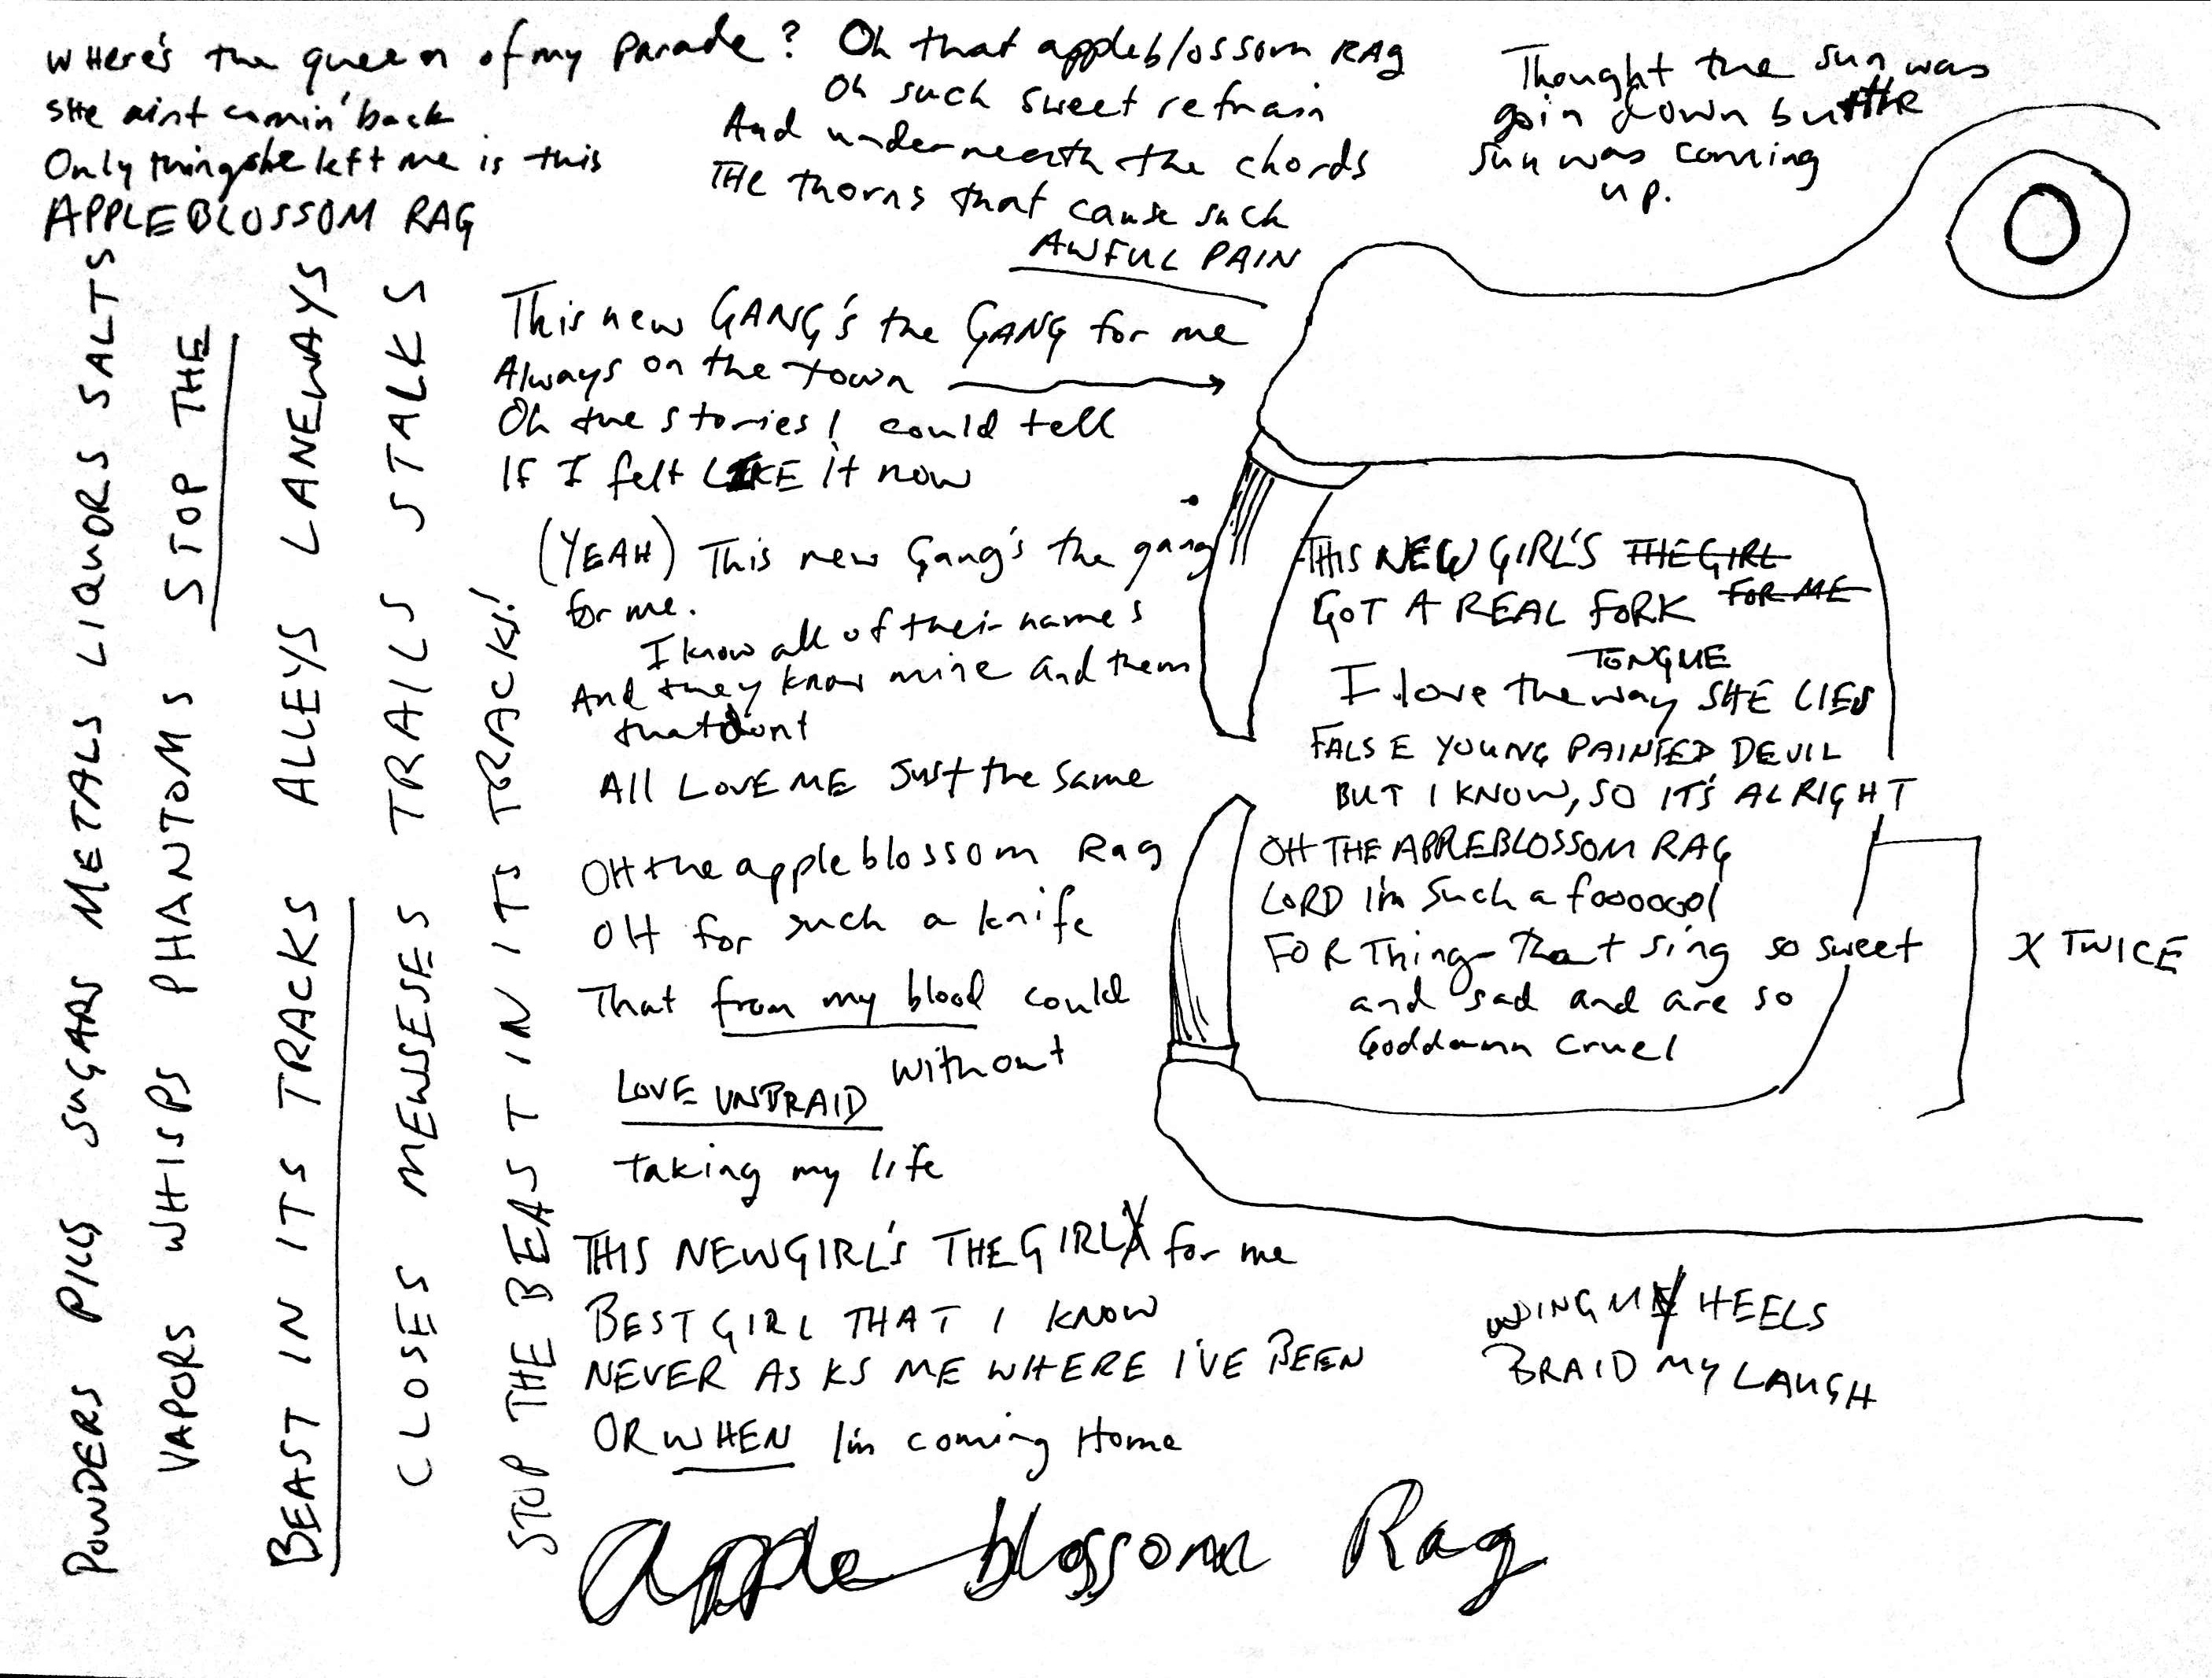 09 Appleblossom Rag Lyrics